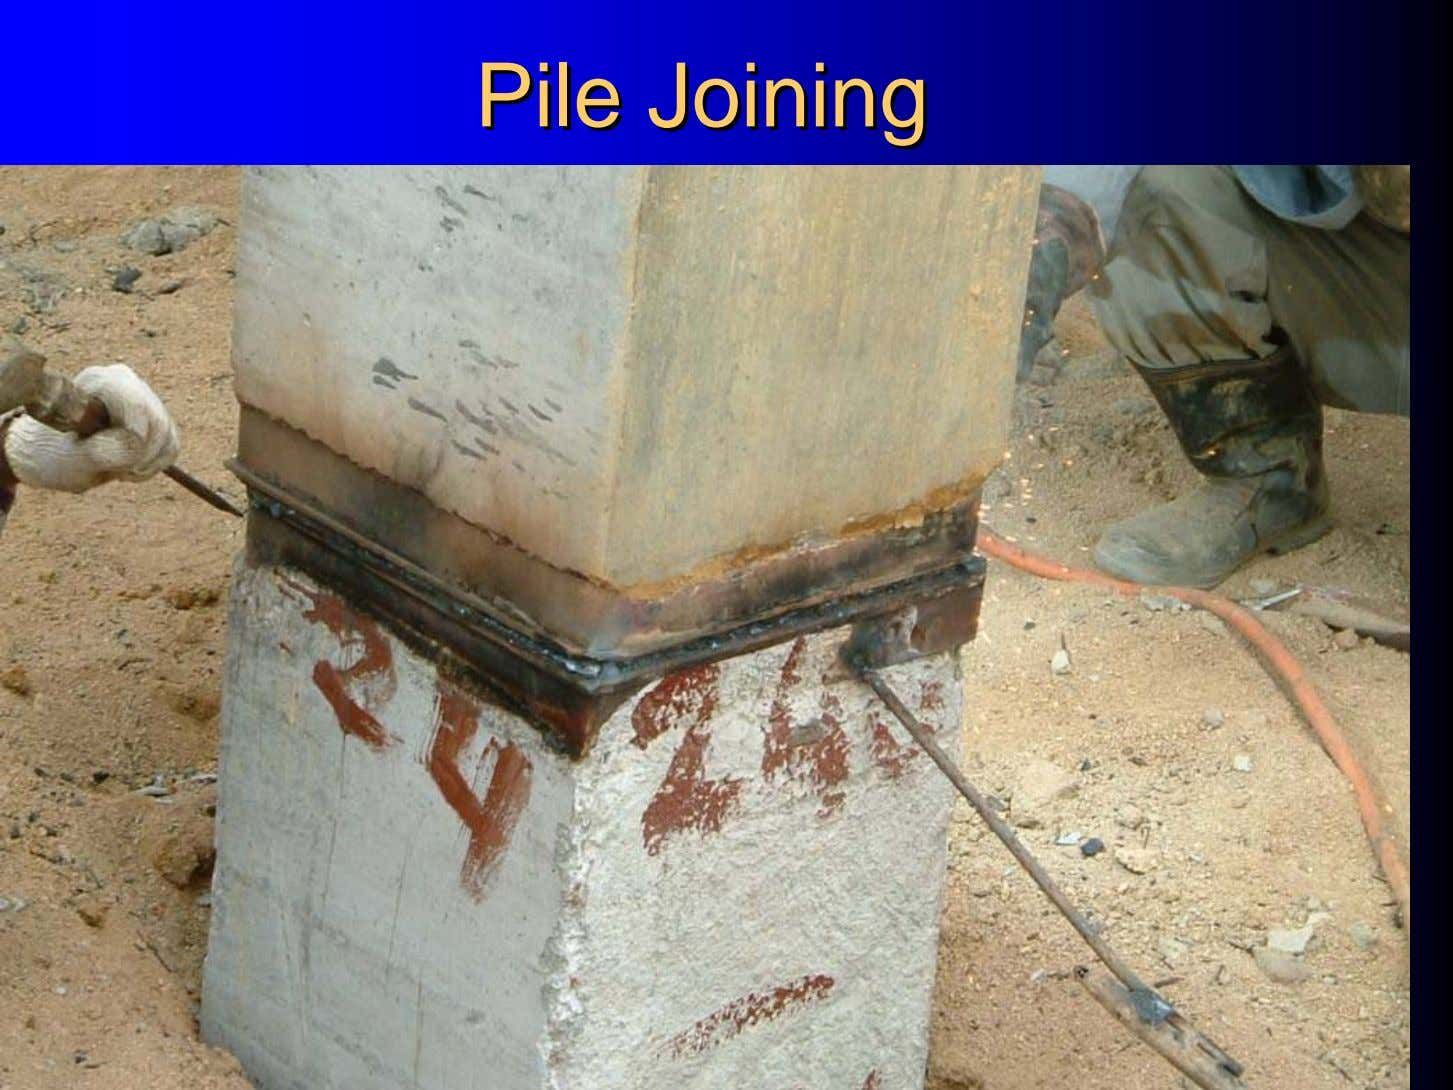 PilePile JoiningJoining